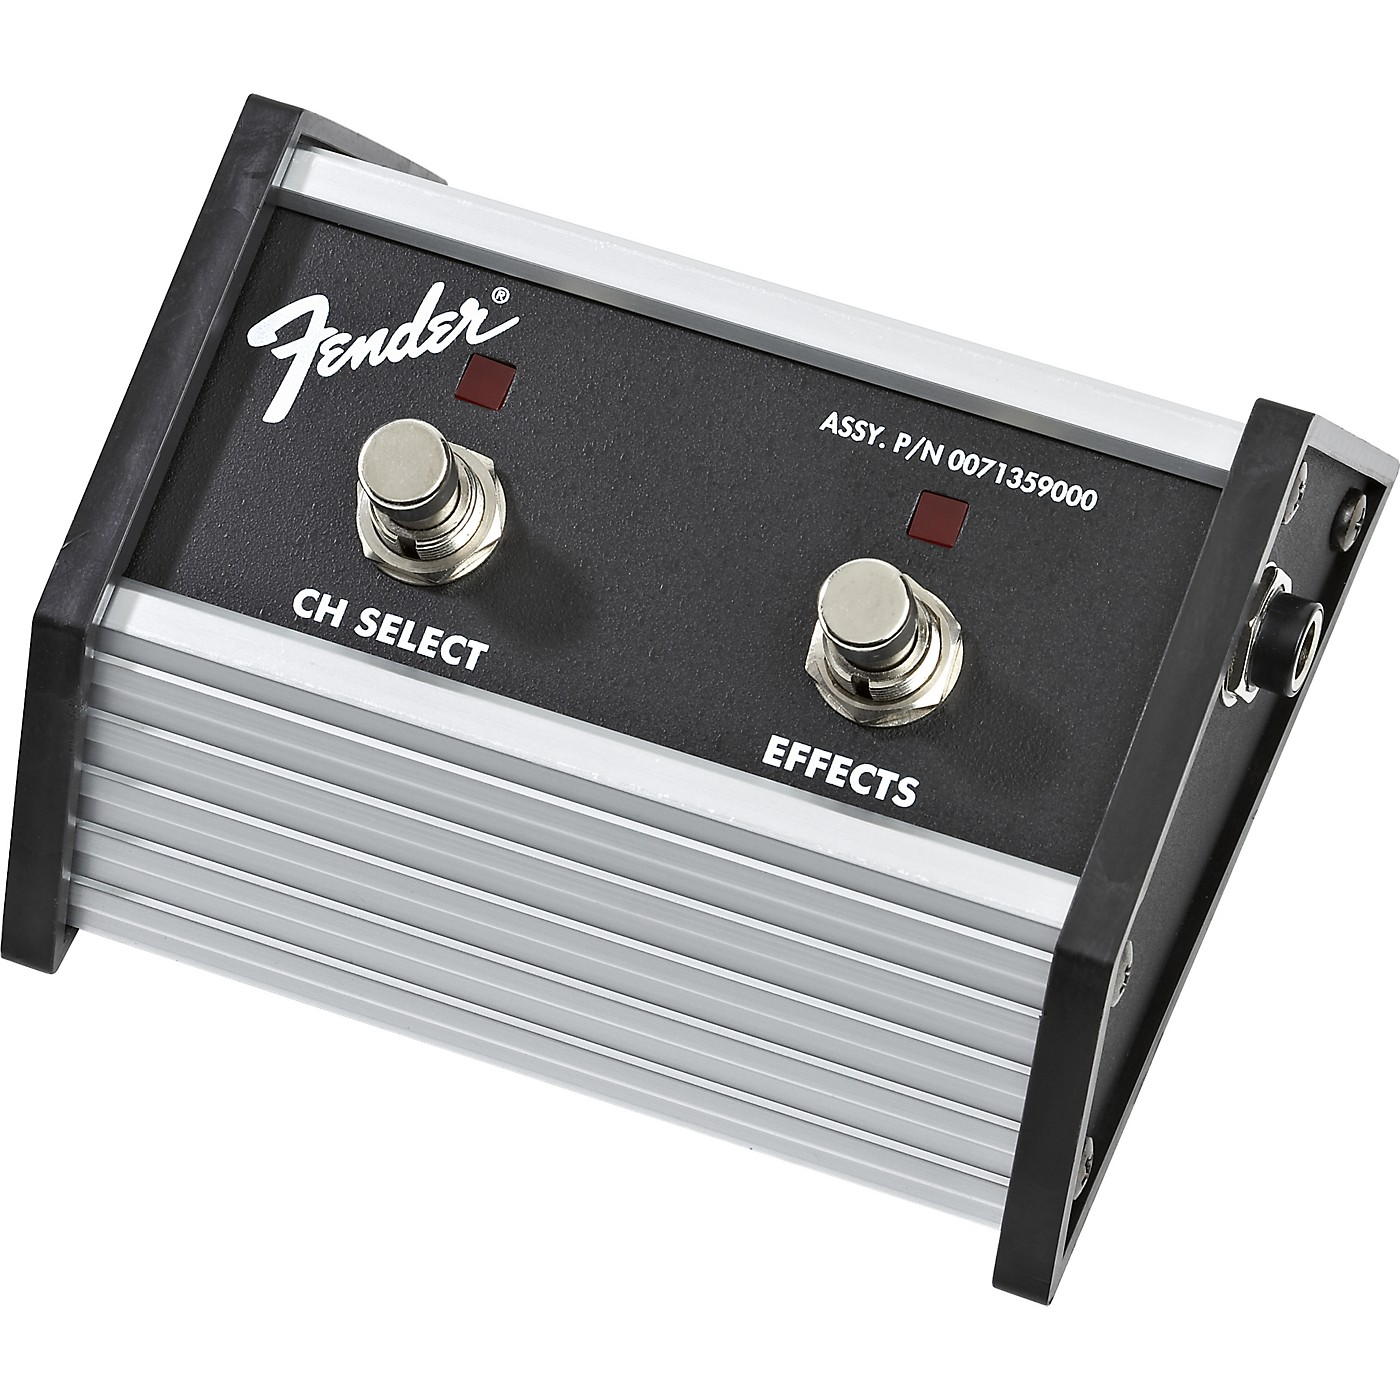 Fender FM65DSP and Super-Champ XD Footswitch thumbnail